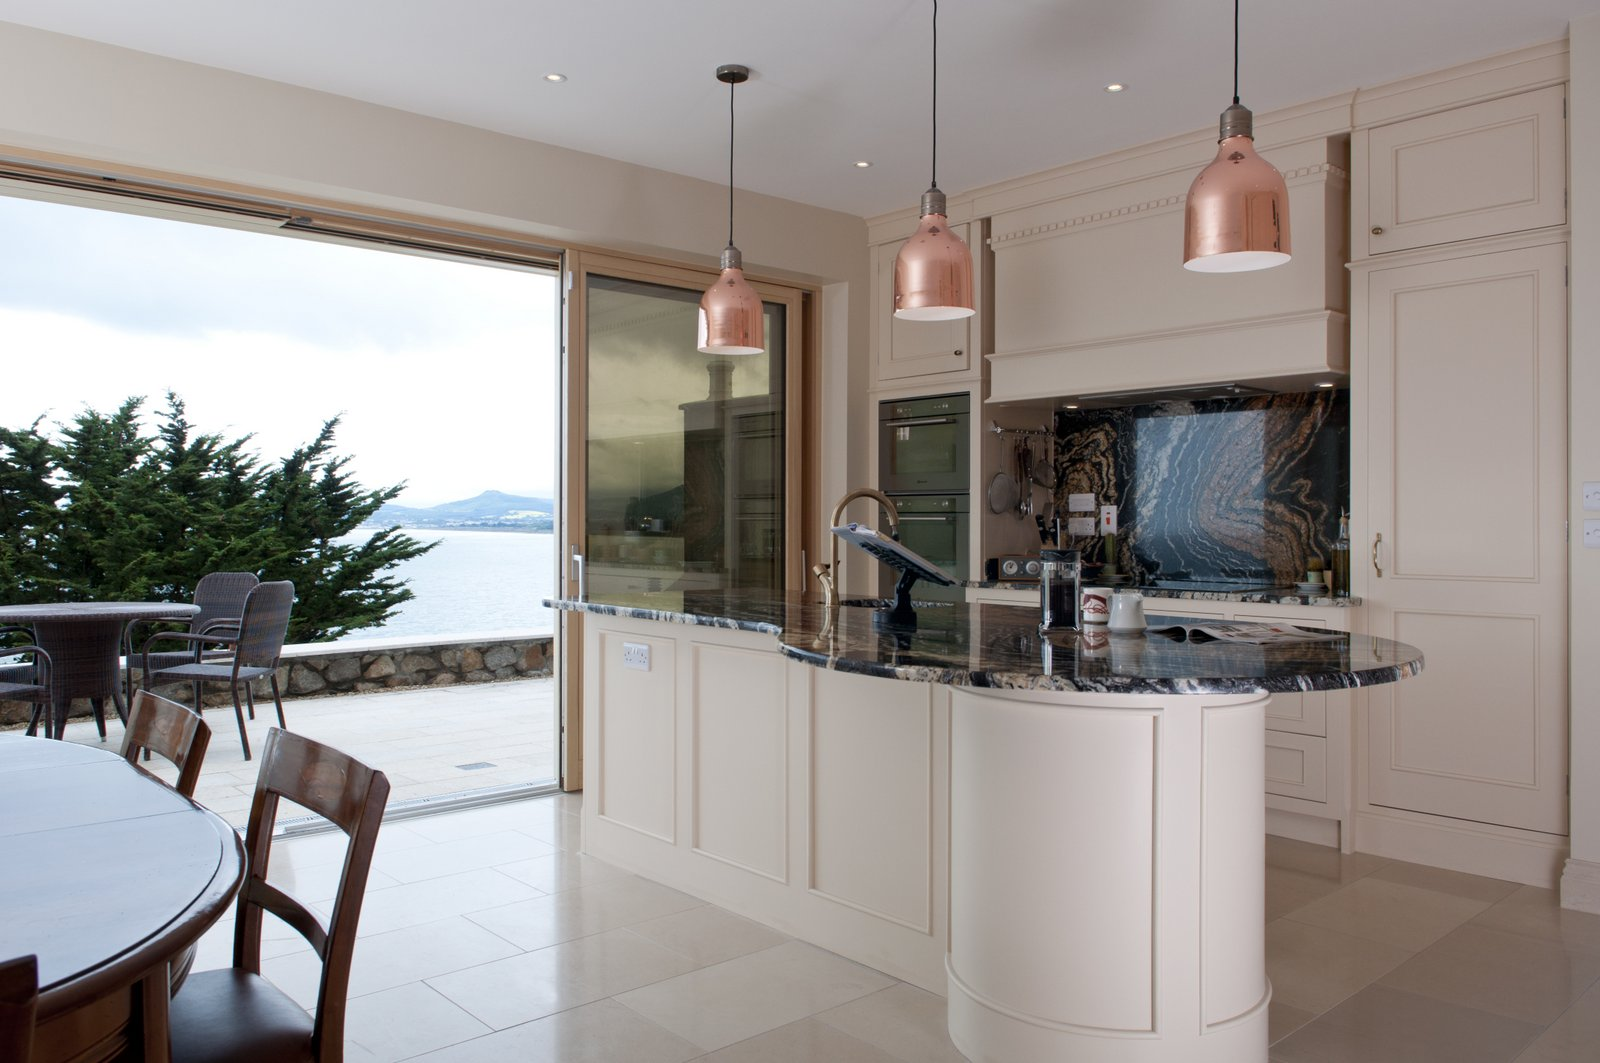 Dalkey - A Classic Kitchen With A Stunning View